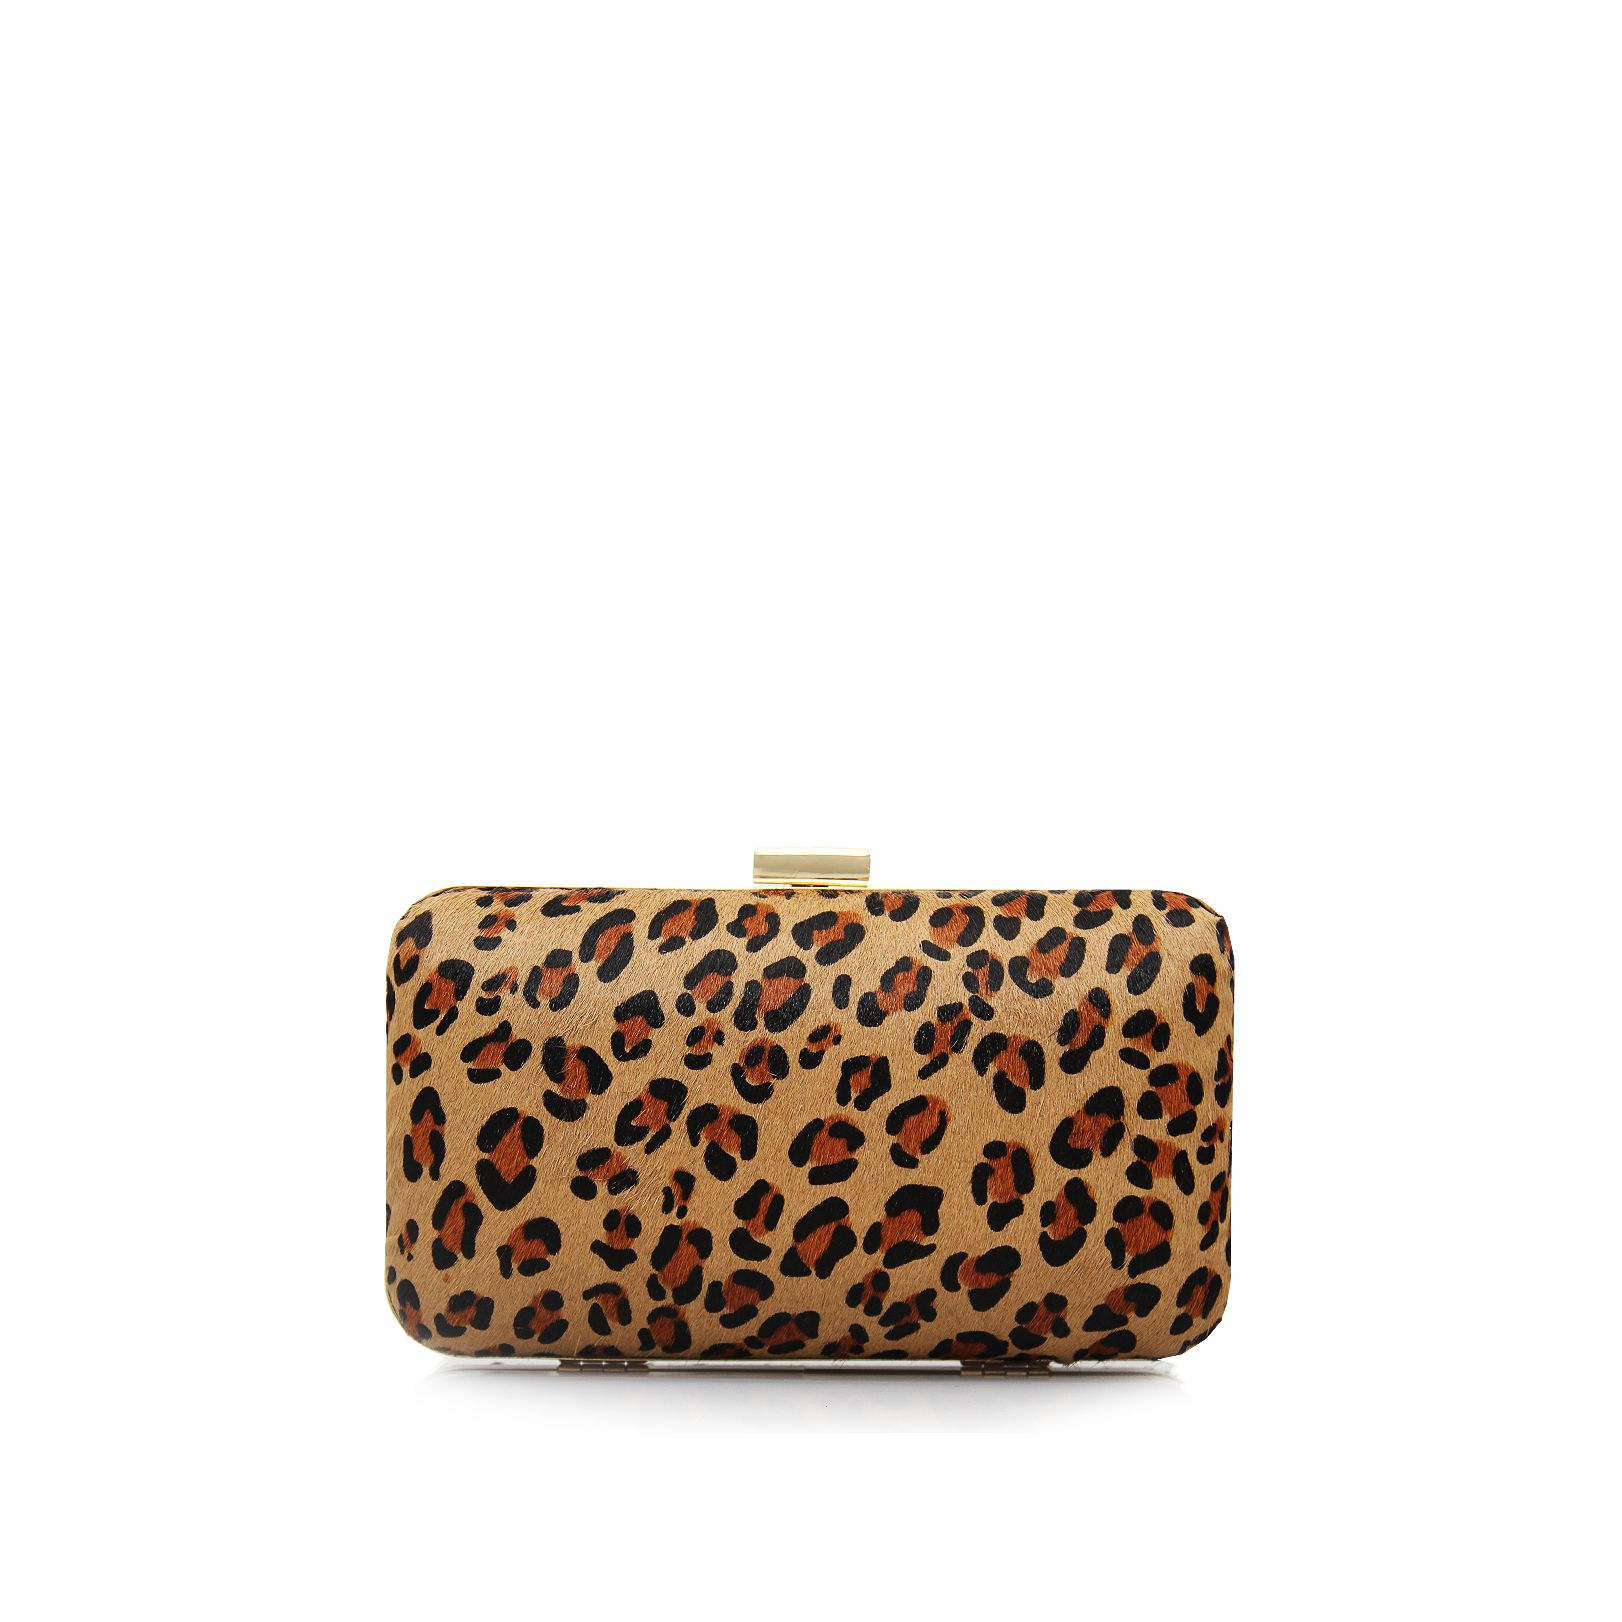 Dandy box clutch bag